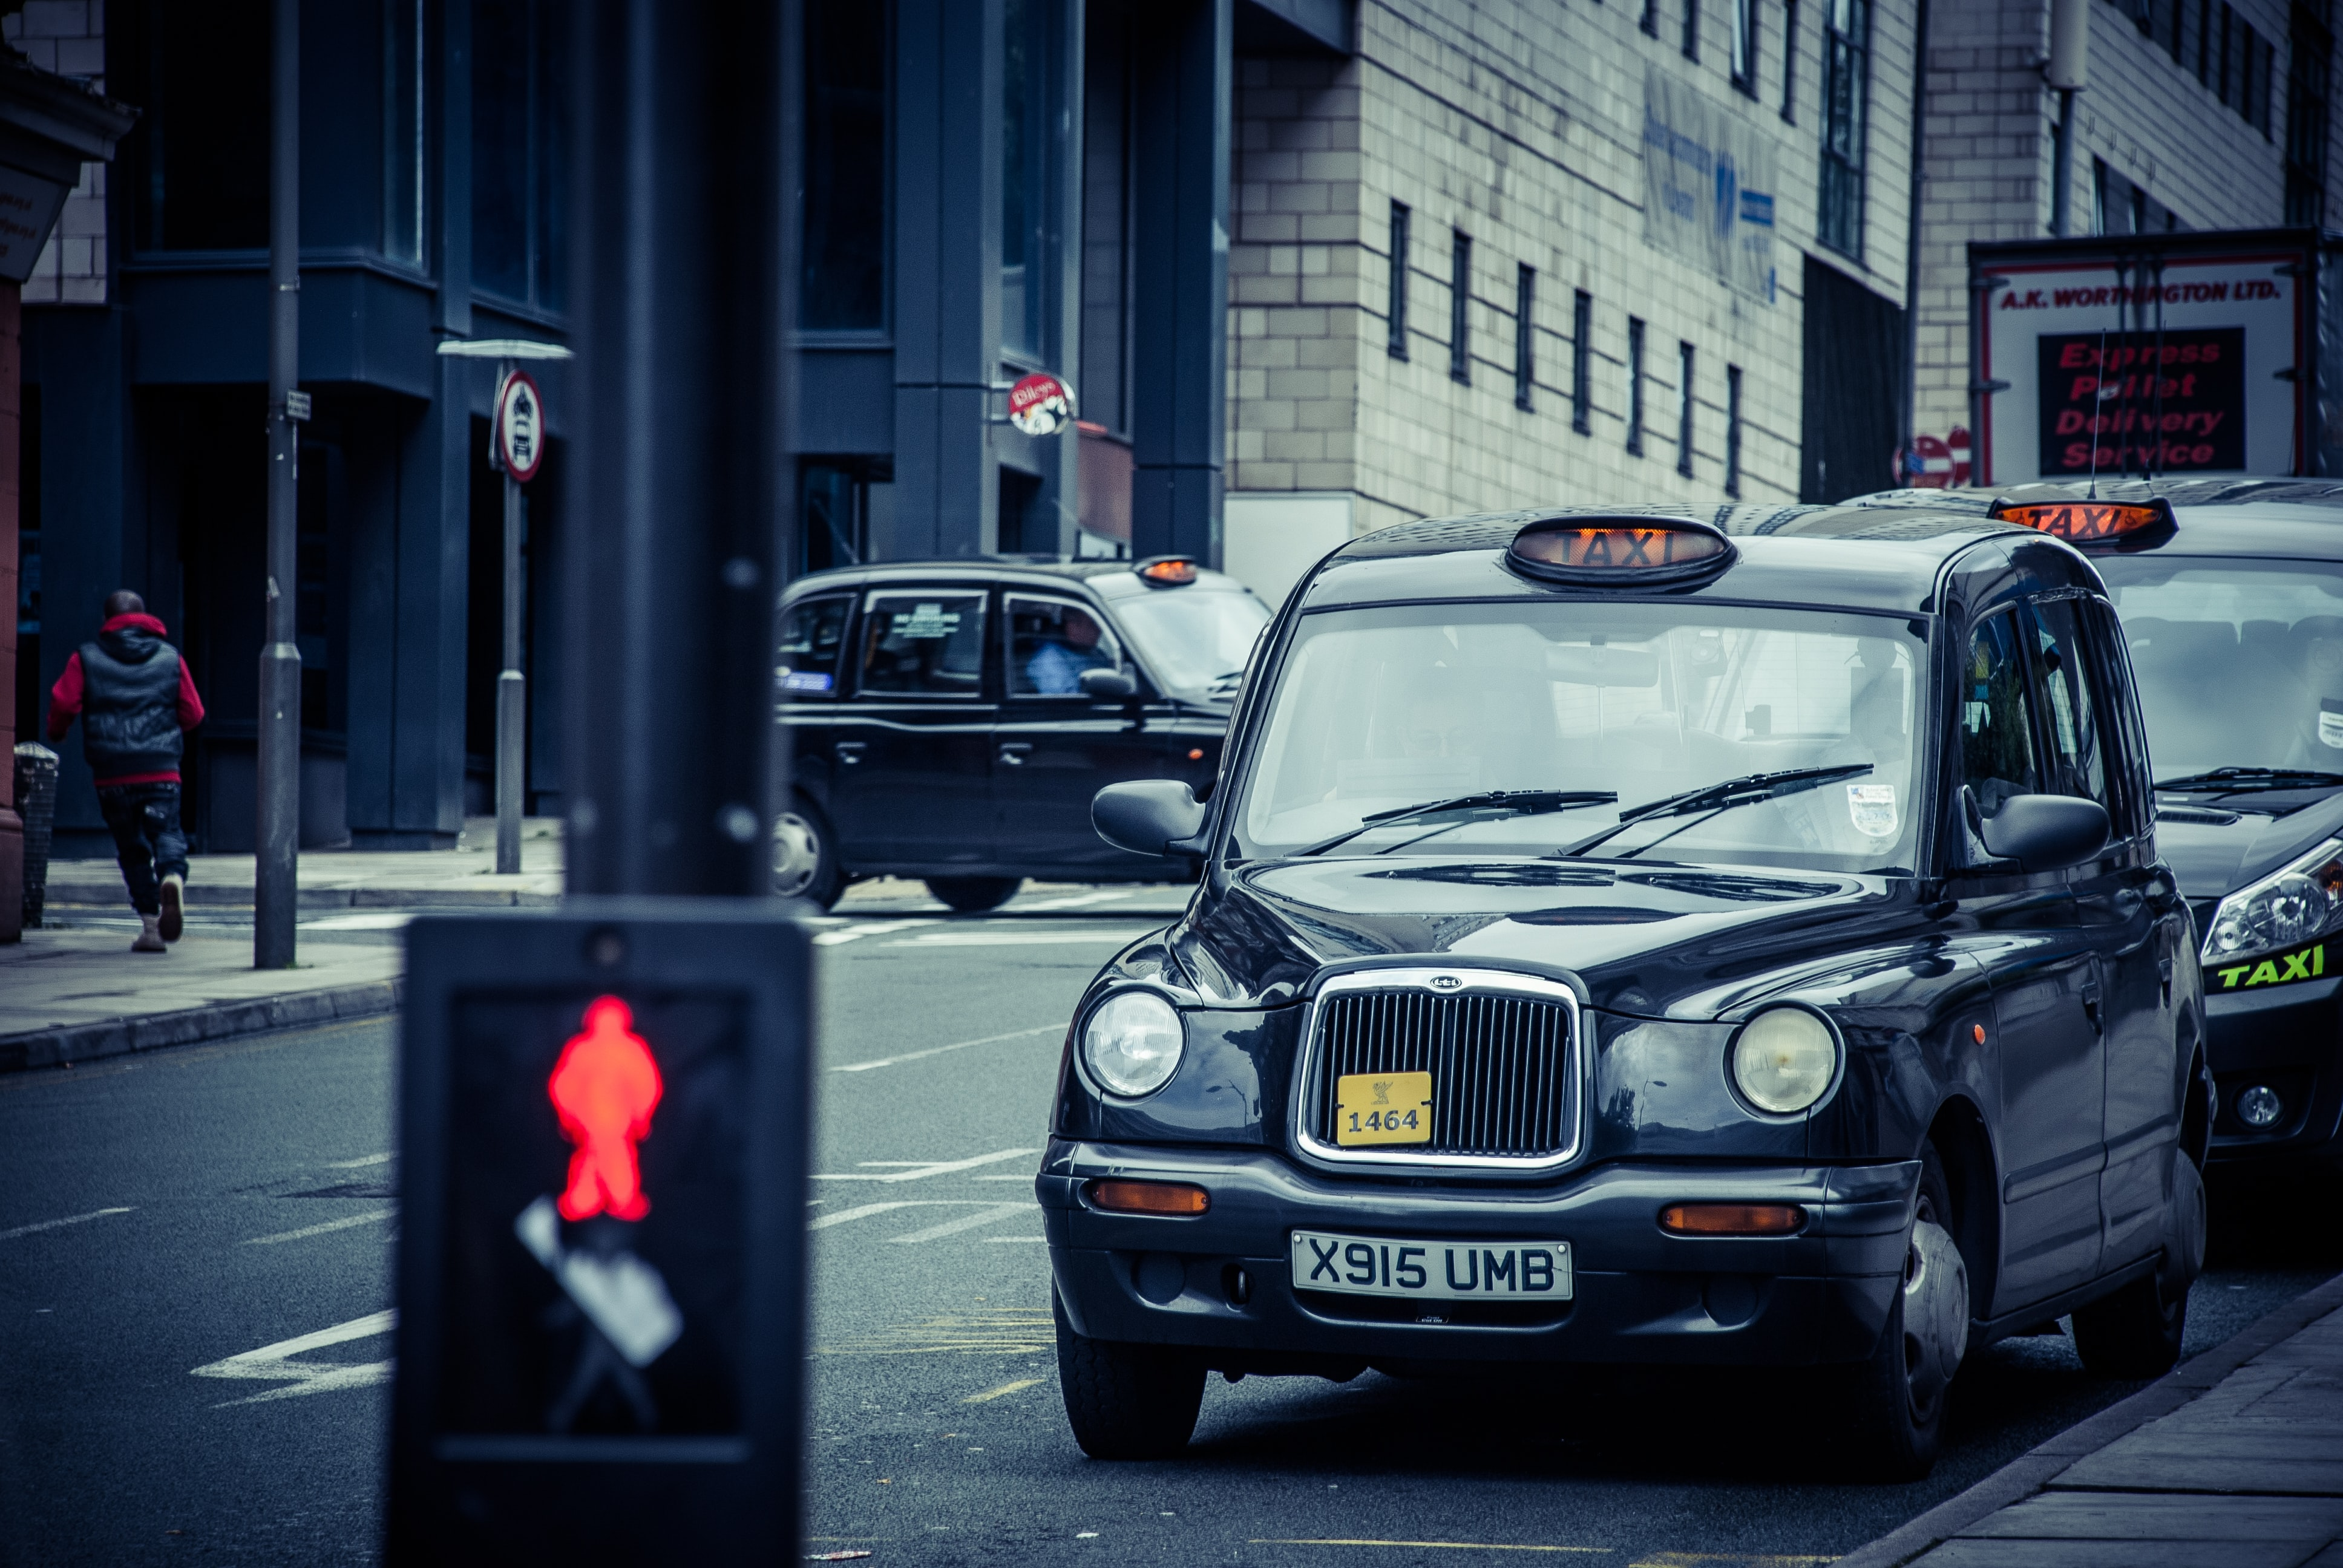 English taxis parked along the road in Liverpool